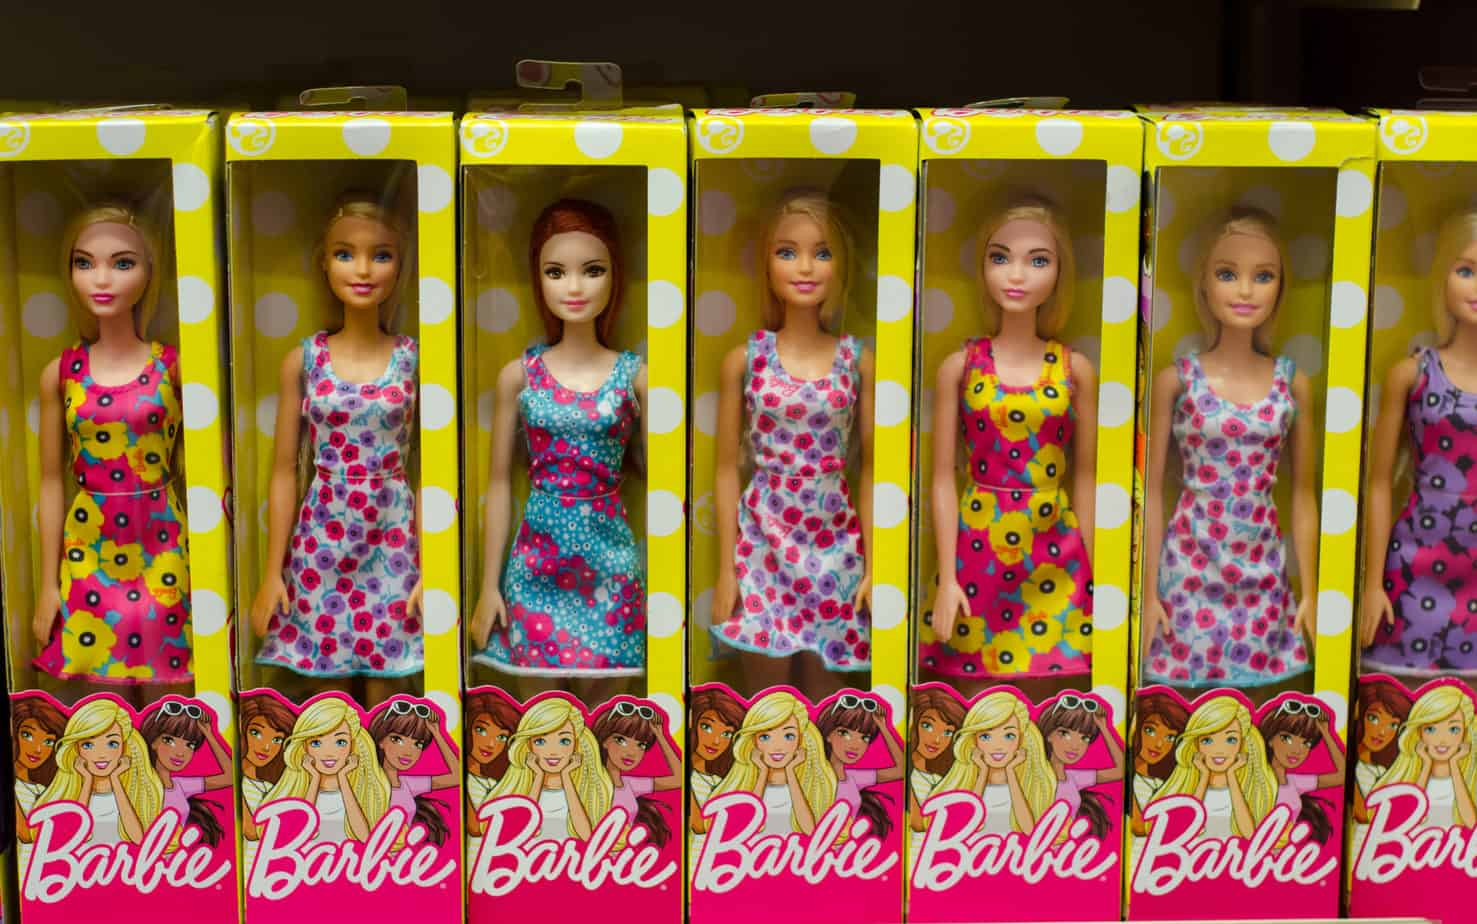 Some Influential Ladies in My Life – Barbie Dolls